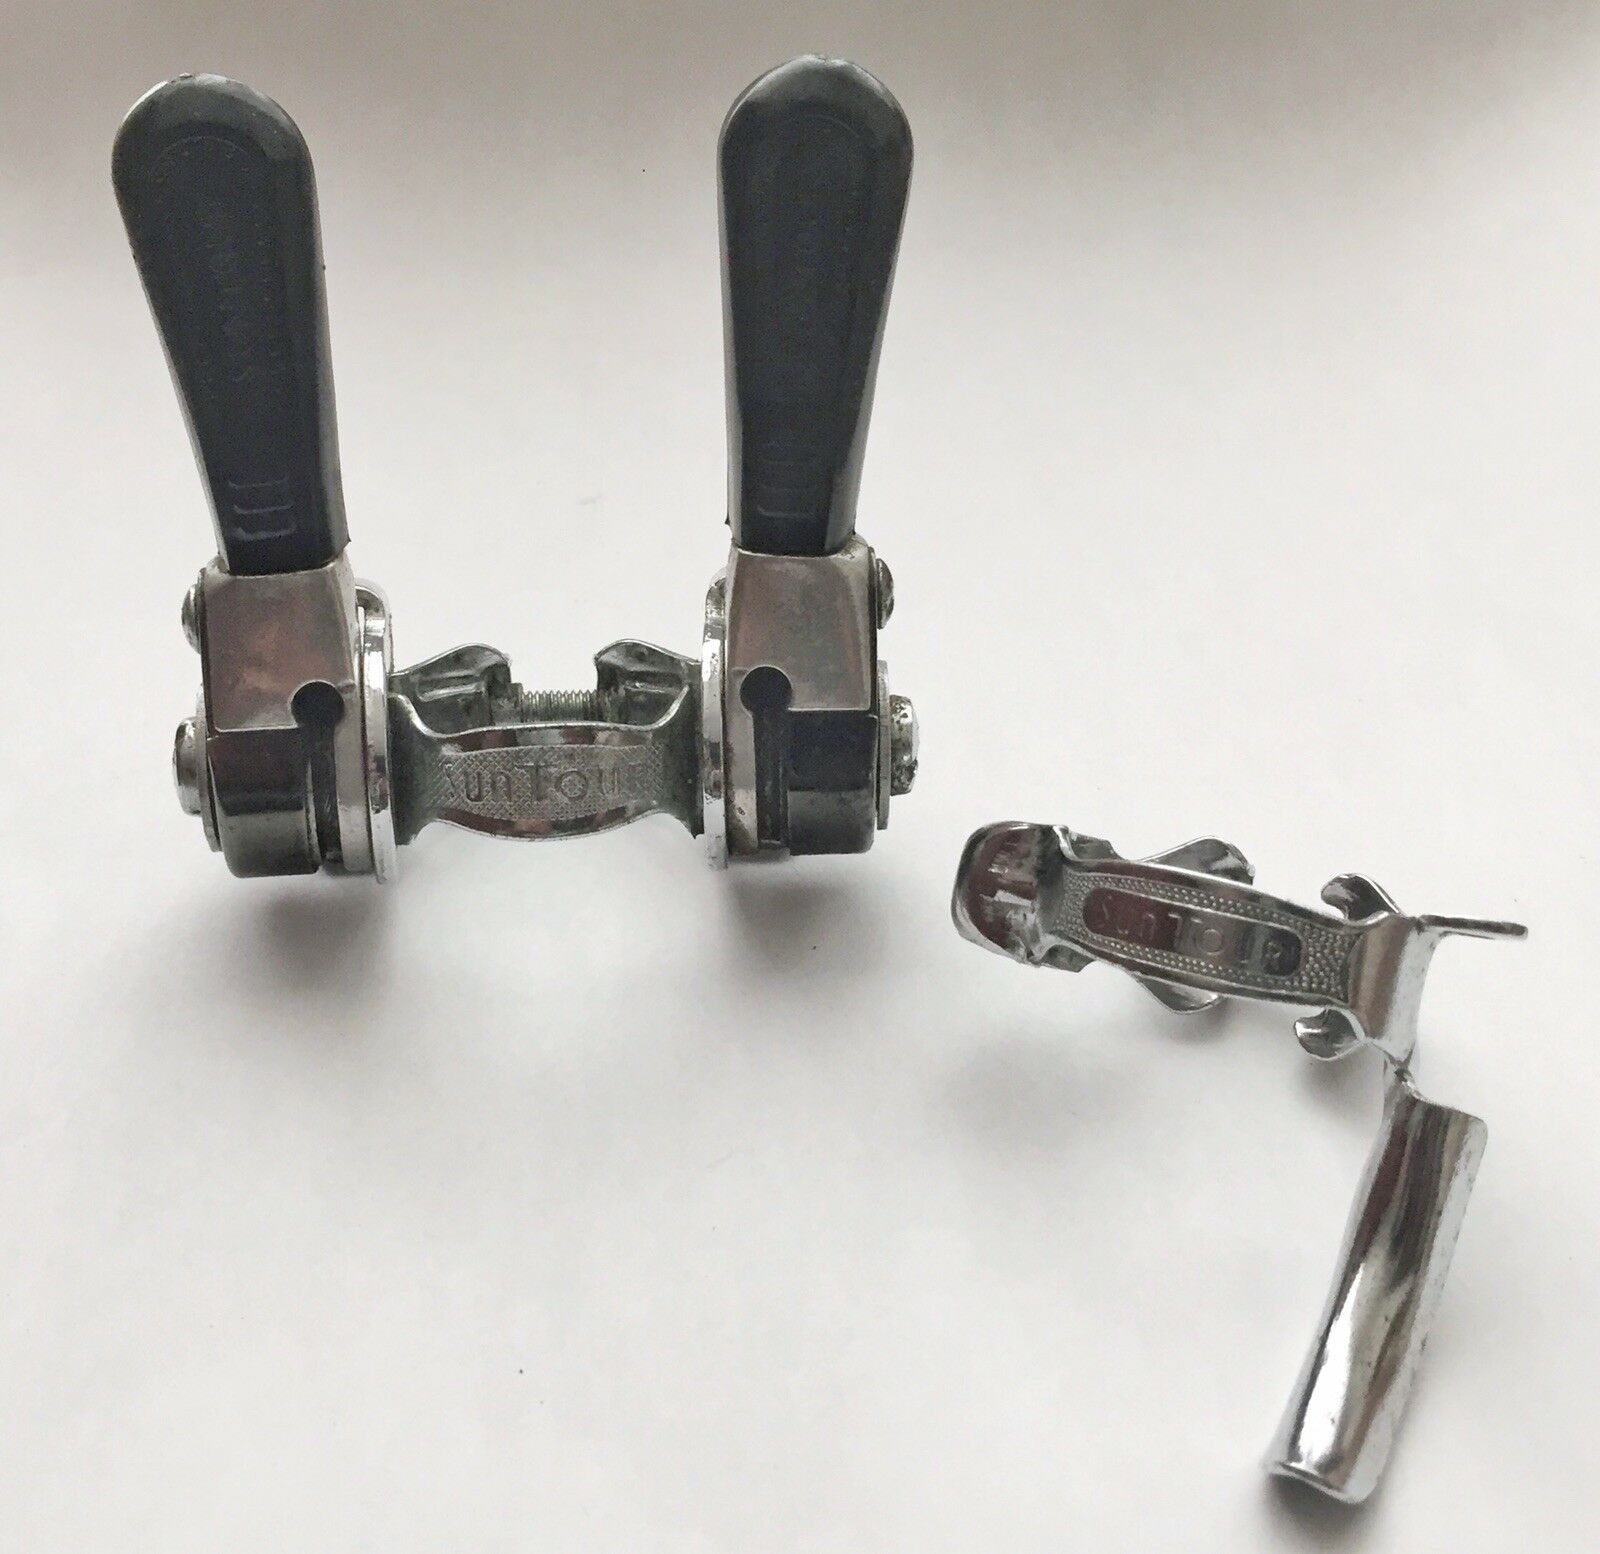 SUNTOUR LD 1500 PDL-M POWER SHIFTERS (Clamp On)  & SUNTOUR CABLE GUIDE (Clamp On)  official quality